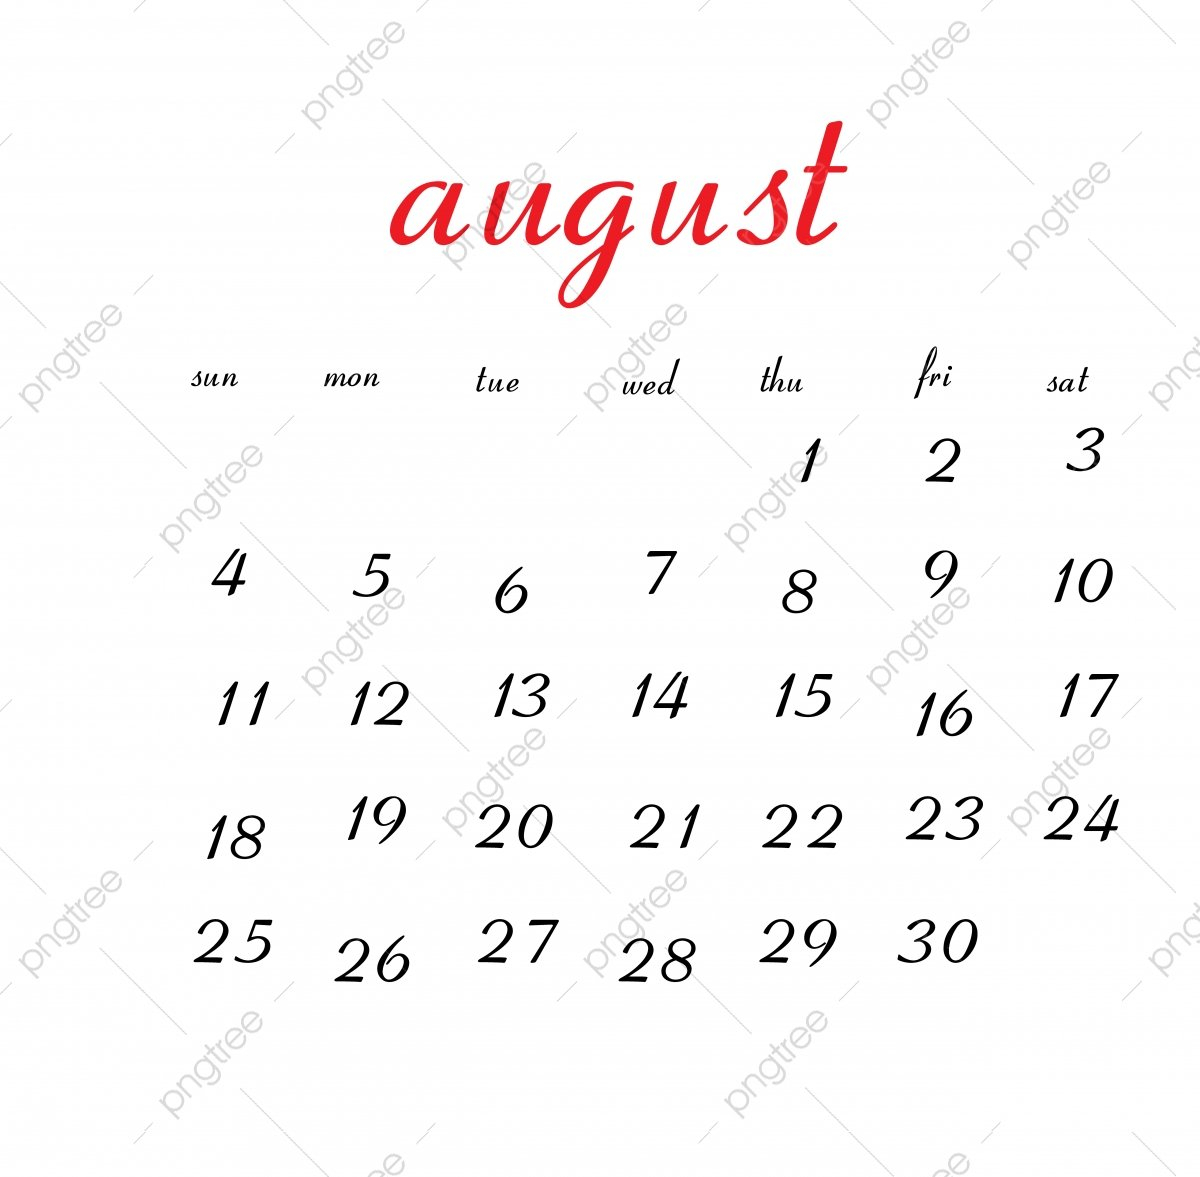 August 2019 Calendar, Calendar, Clean, White Png And Vector With August 7 2019 Calendar